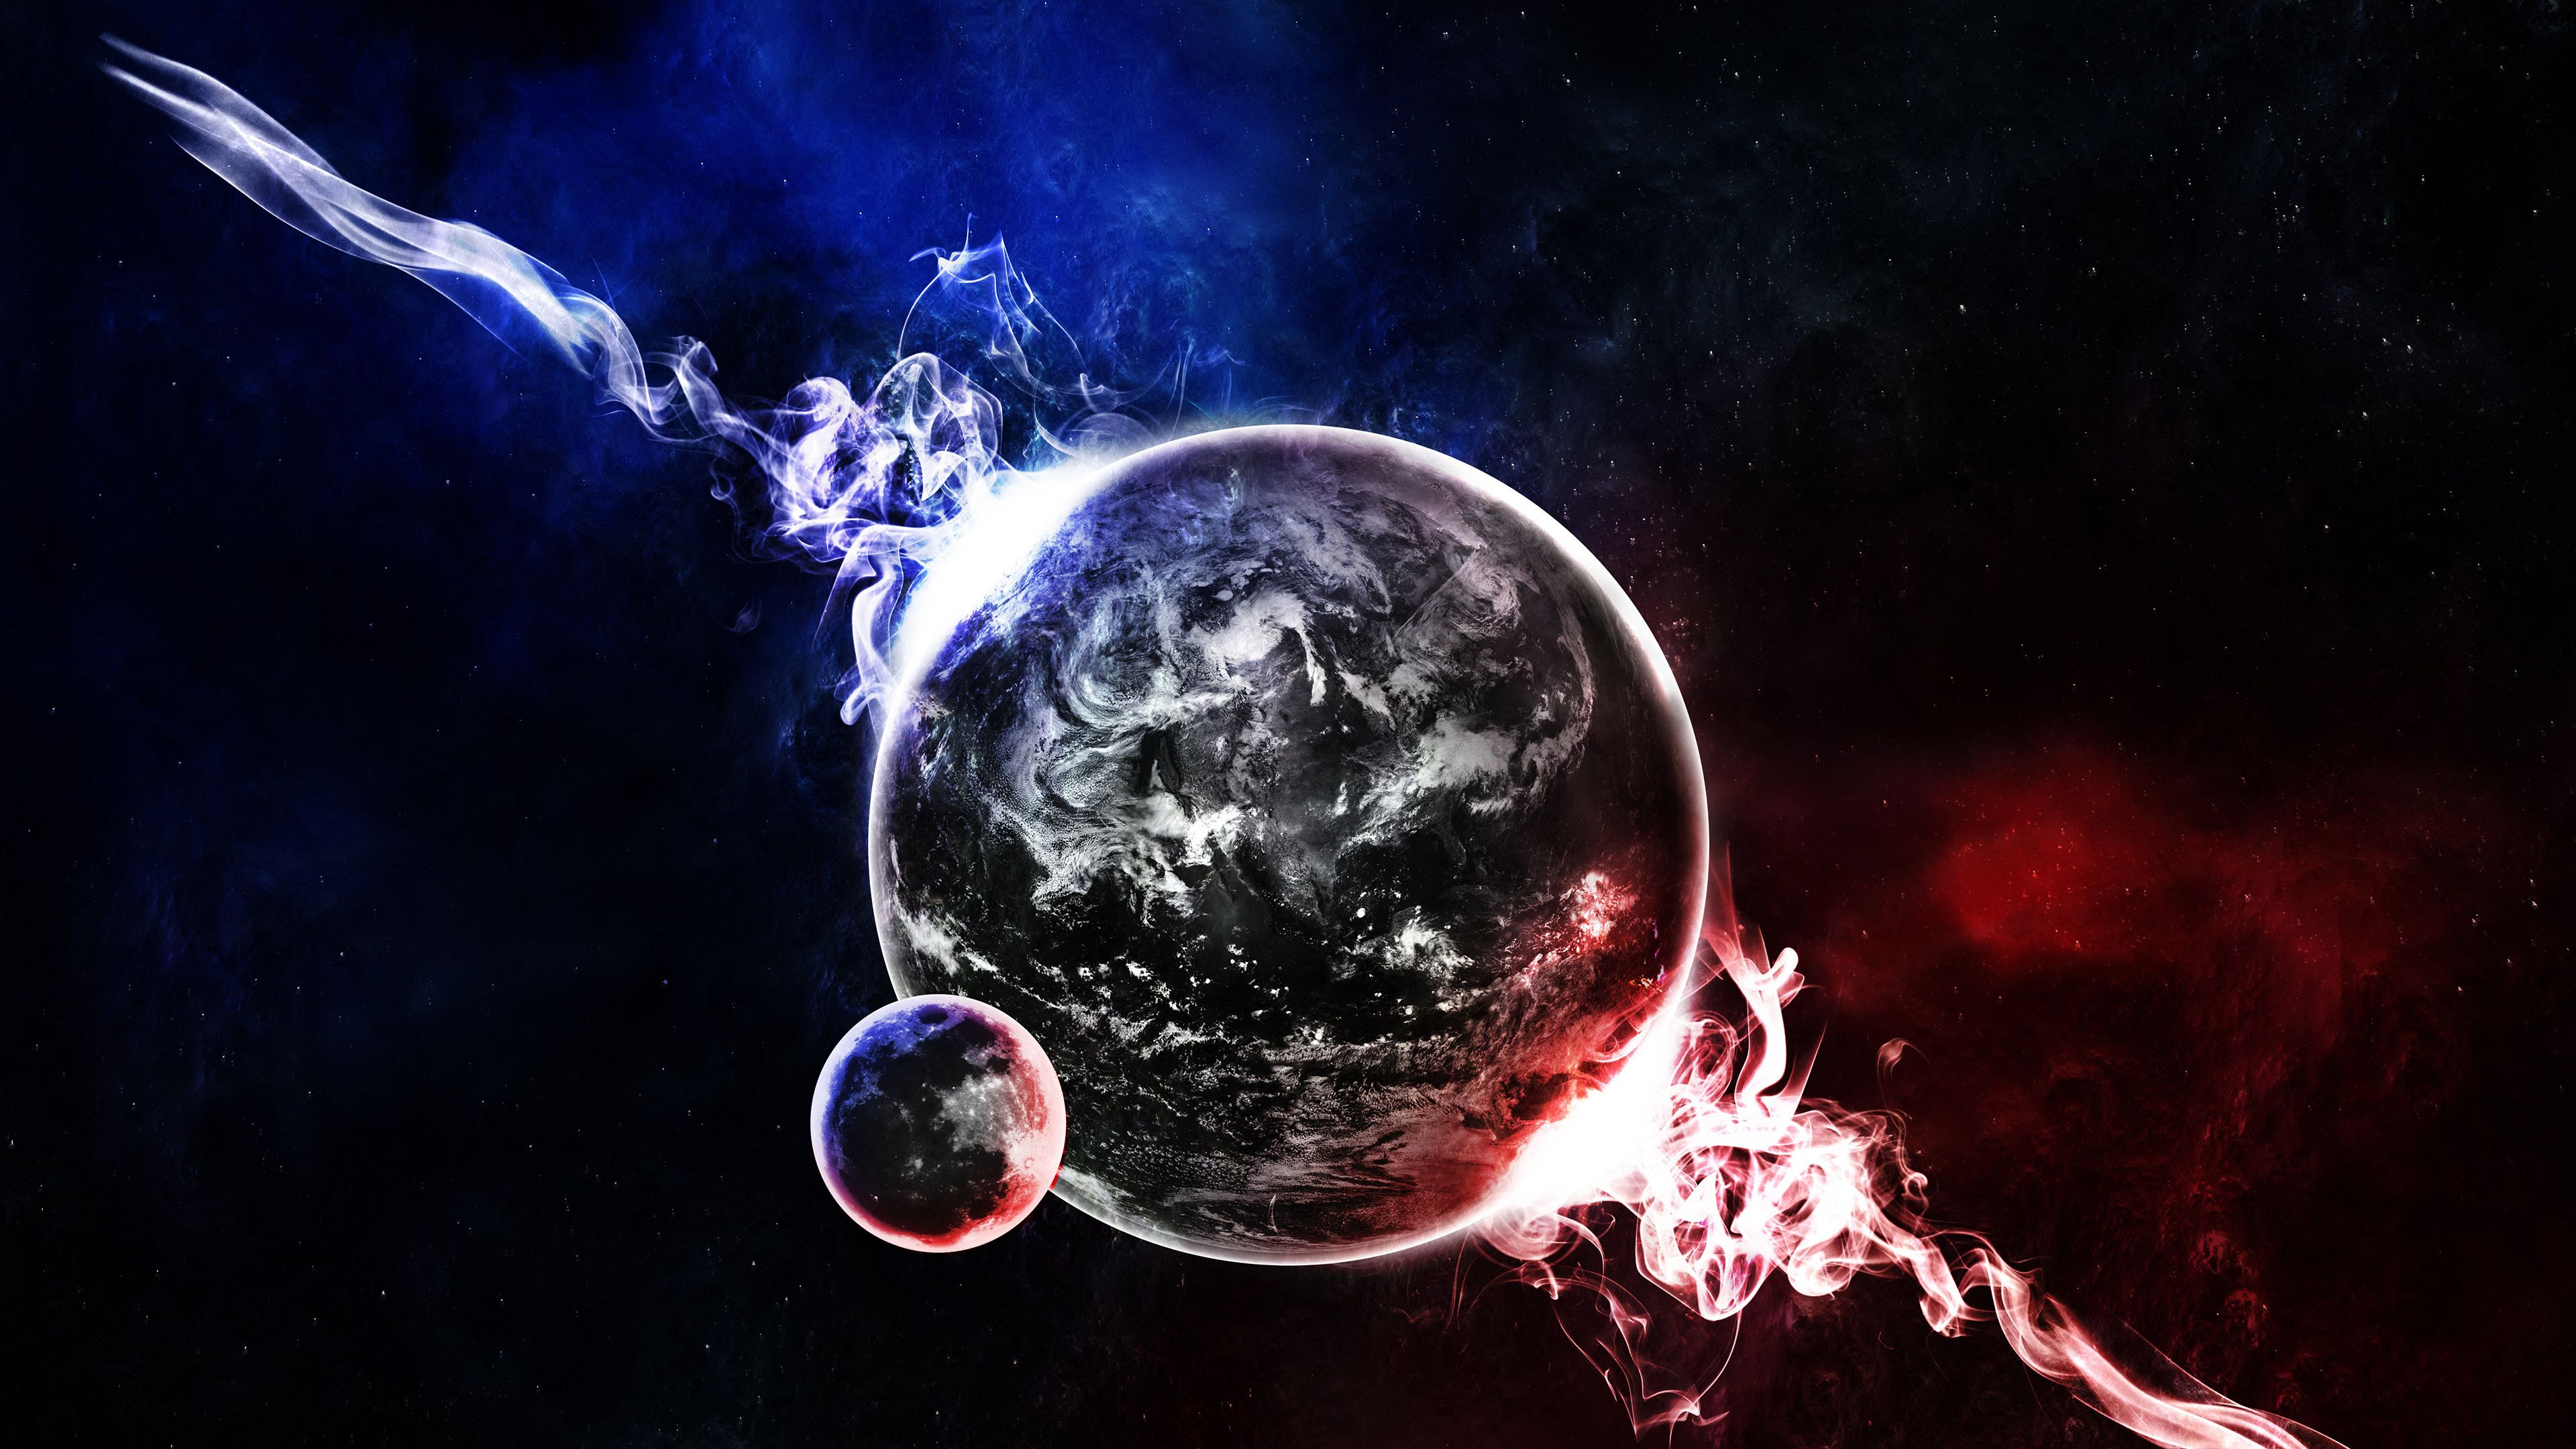 Cool Wallpaper Chromebook Mywallpapers Site In 2020 Astral Travel Planets Cool Wallpaper